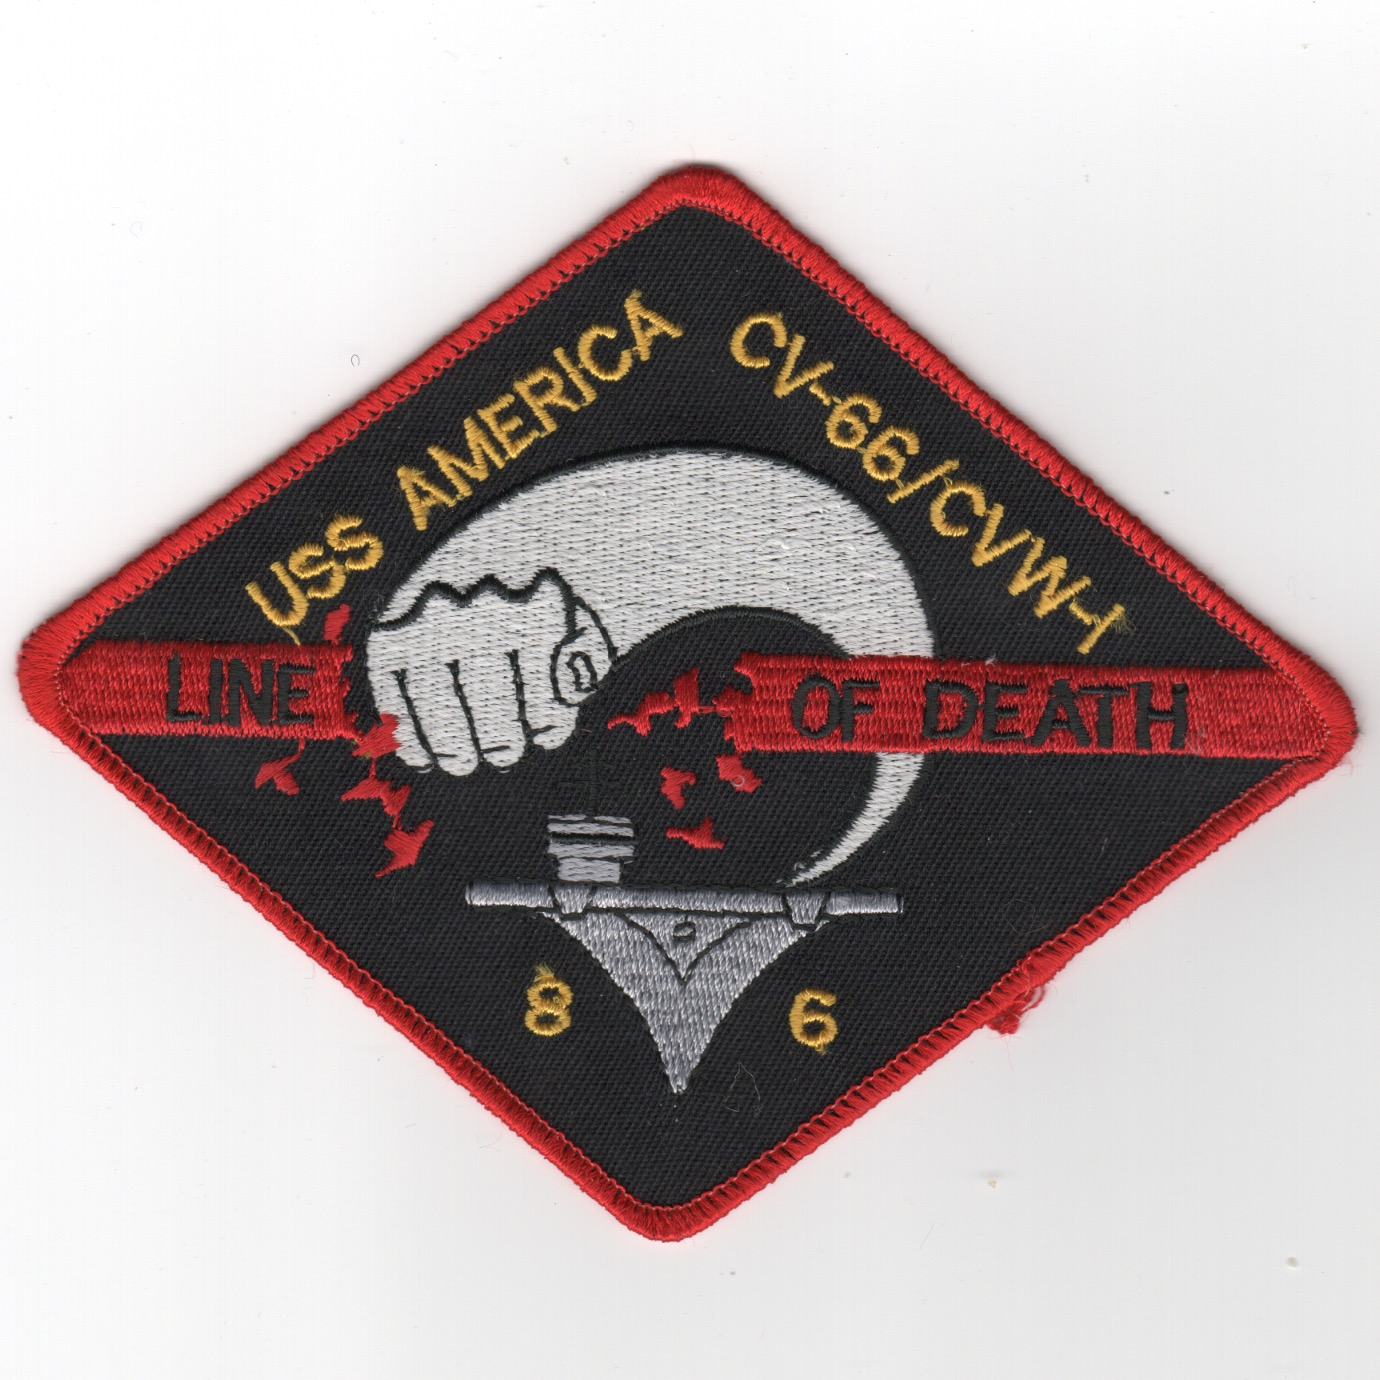 455) CV-66/CVW-1 1986 'Line of Death' Patch